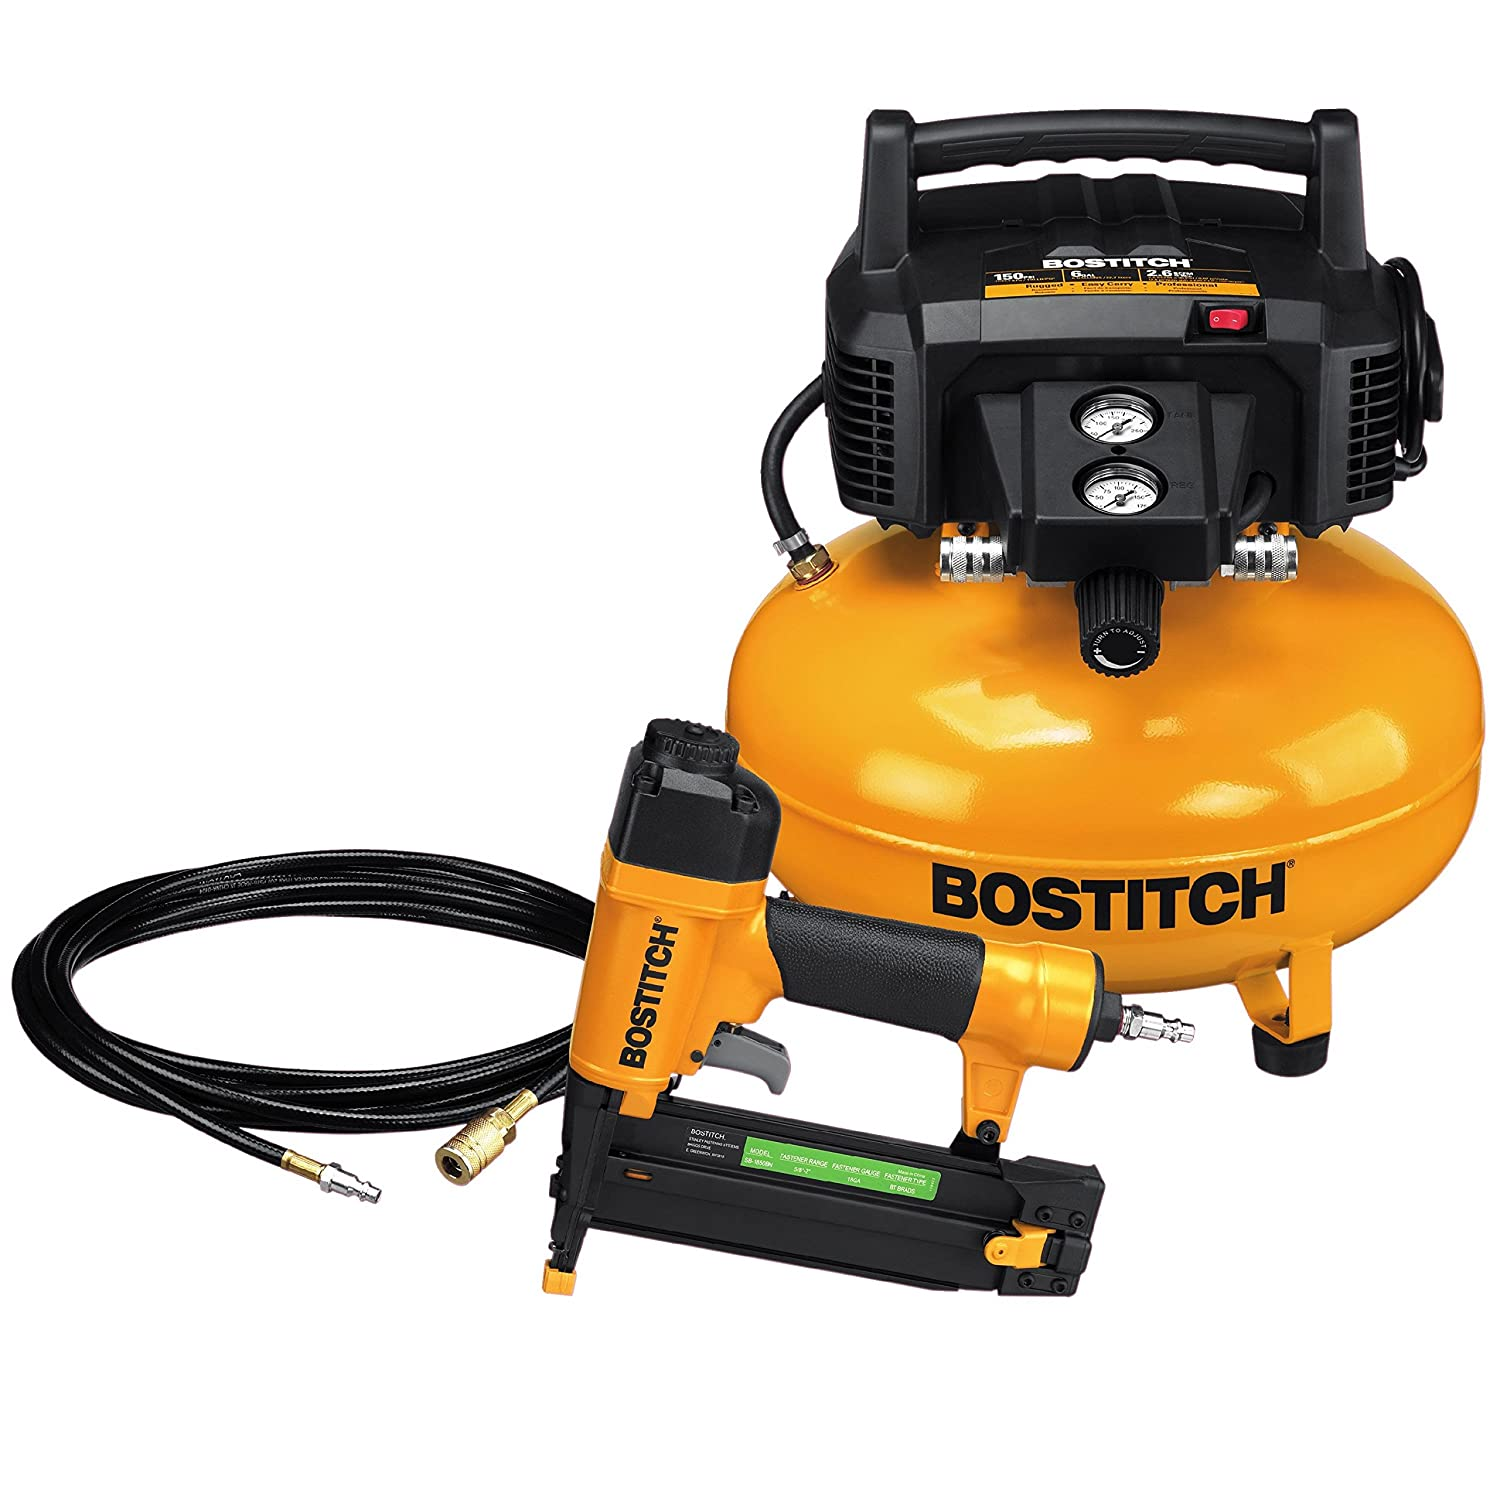 BOSTITCH BTFP02012 6 Gallon Pancake Compressor